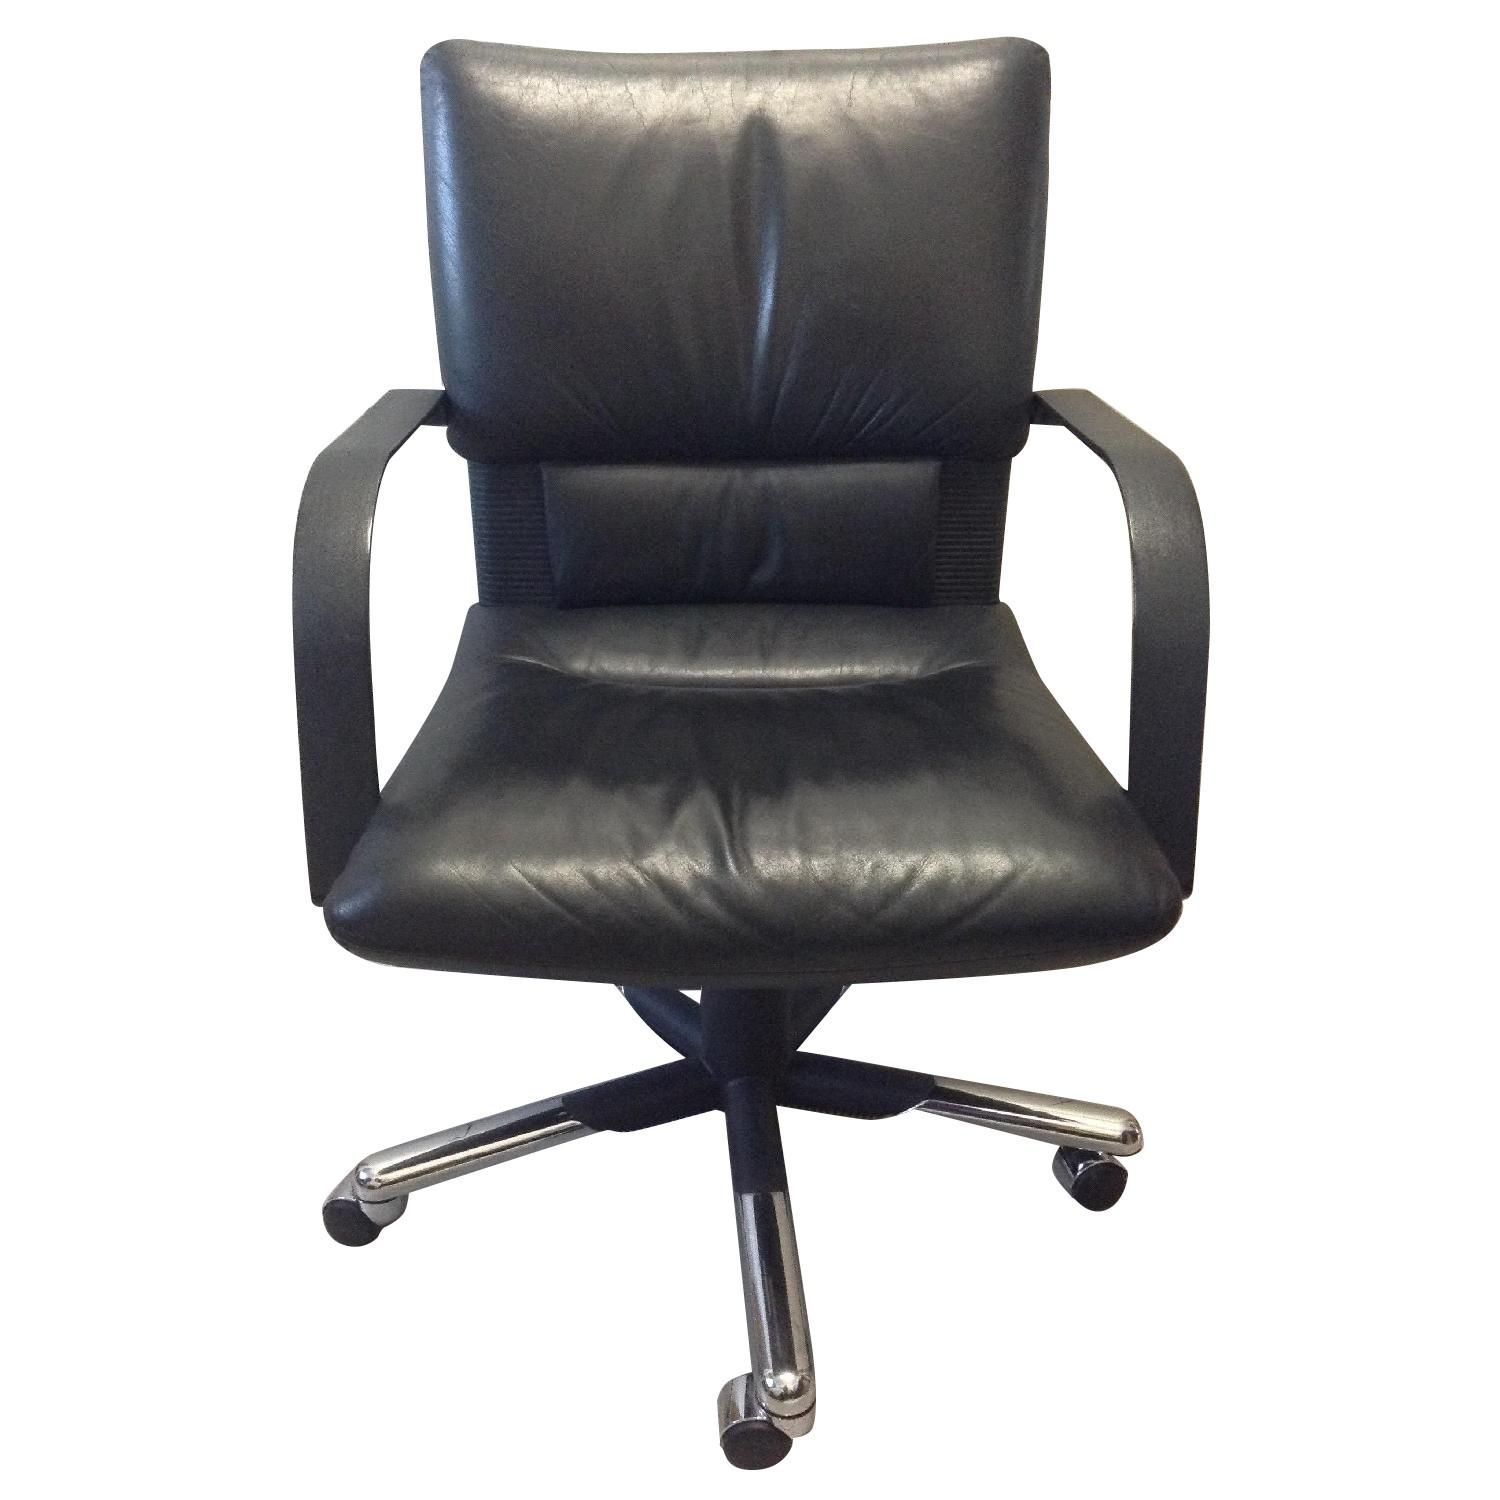 Vitra Black Leather Swivel Chair By Mario Bellini - image-0